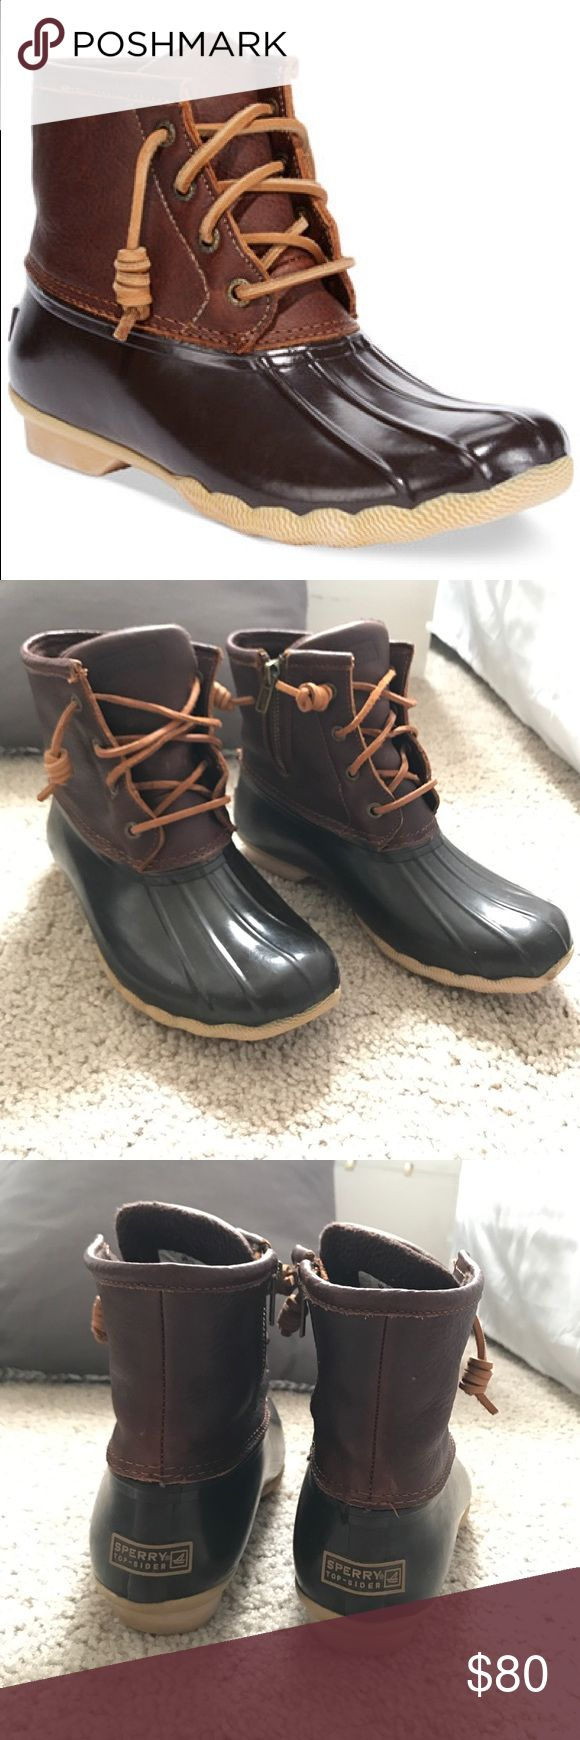 SPERRY saltwater duck boot Brand new worn only twice. Perfect condition. Will ship immediately. Very comfortable. Fits true to size. Willing to negotiate. Sperry Top-Sider Shoes Winter & Rain Boots